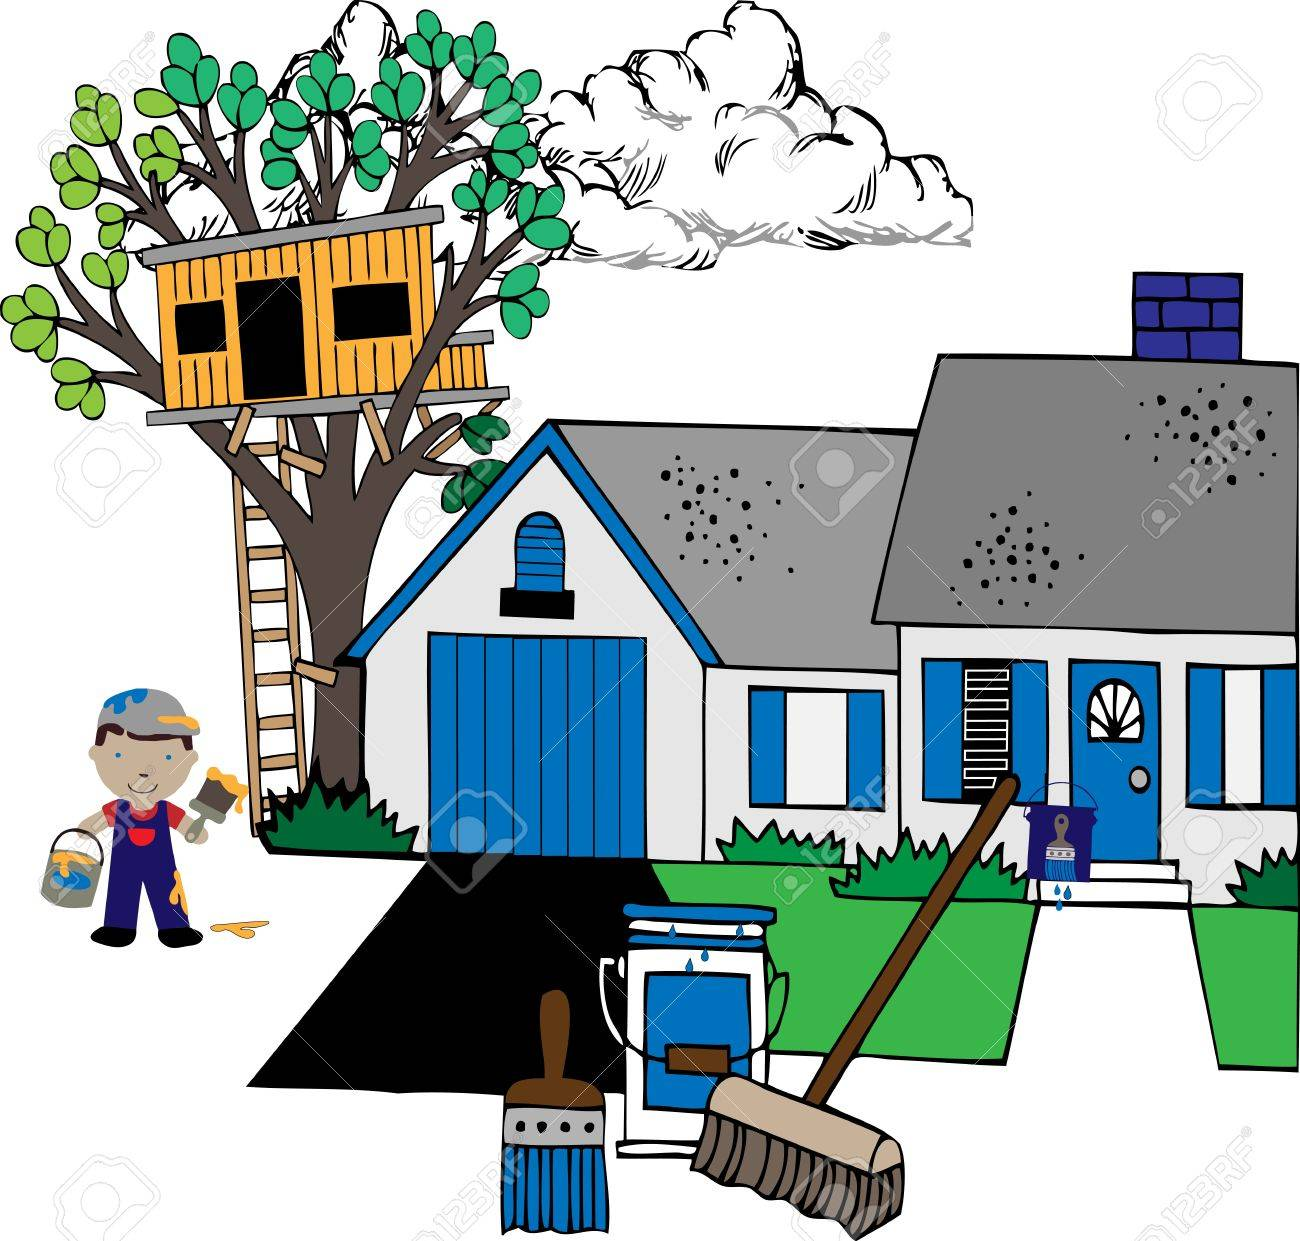 Painting the house with paints, house, treehouse, painter, supplies illustration Stock Vector - 13927384